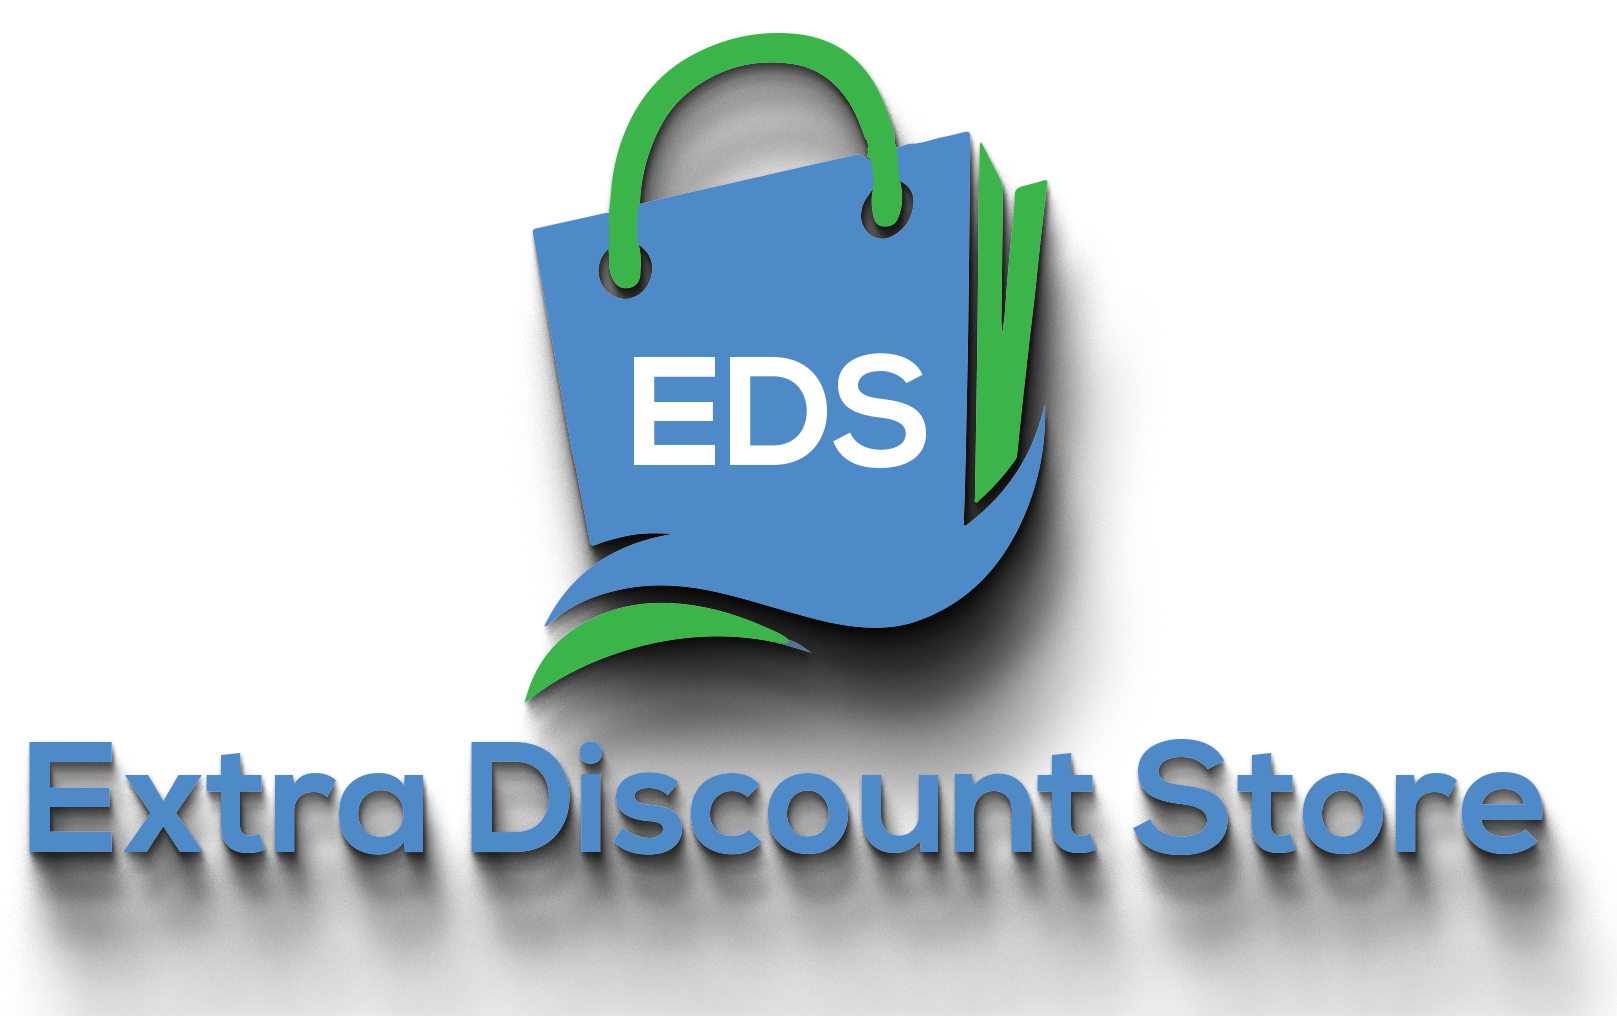 EXTRA DISCOUNT STORE